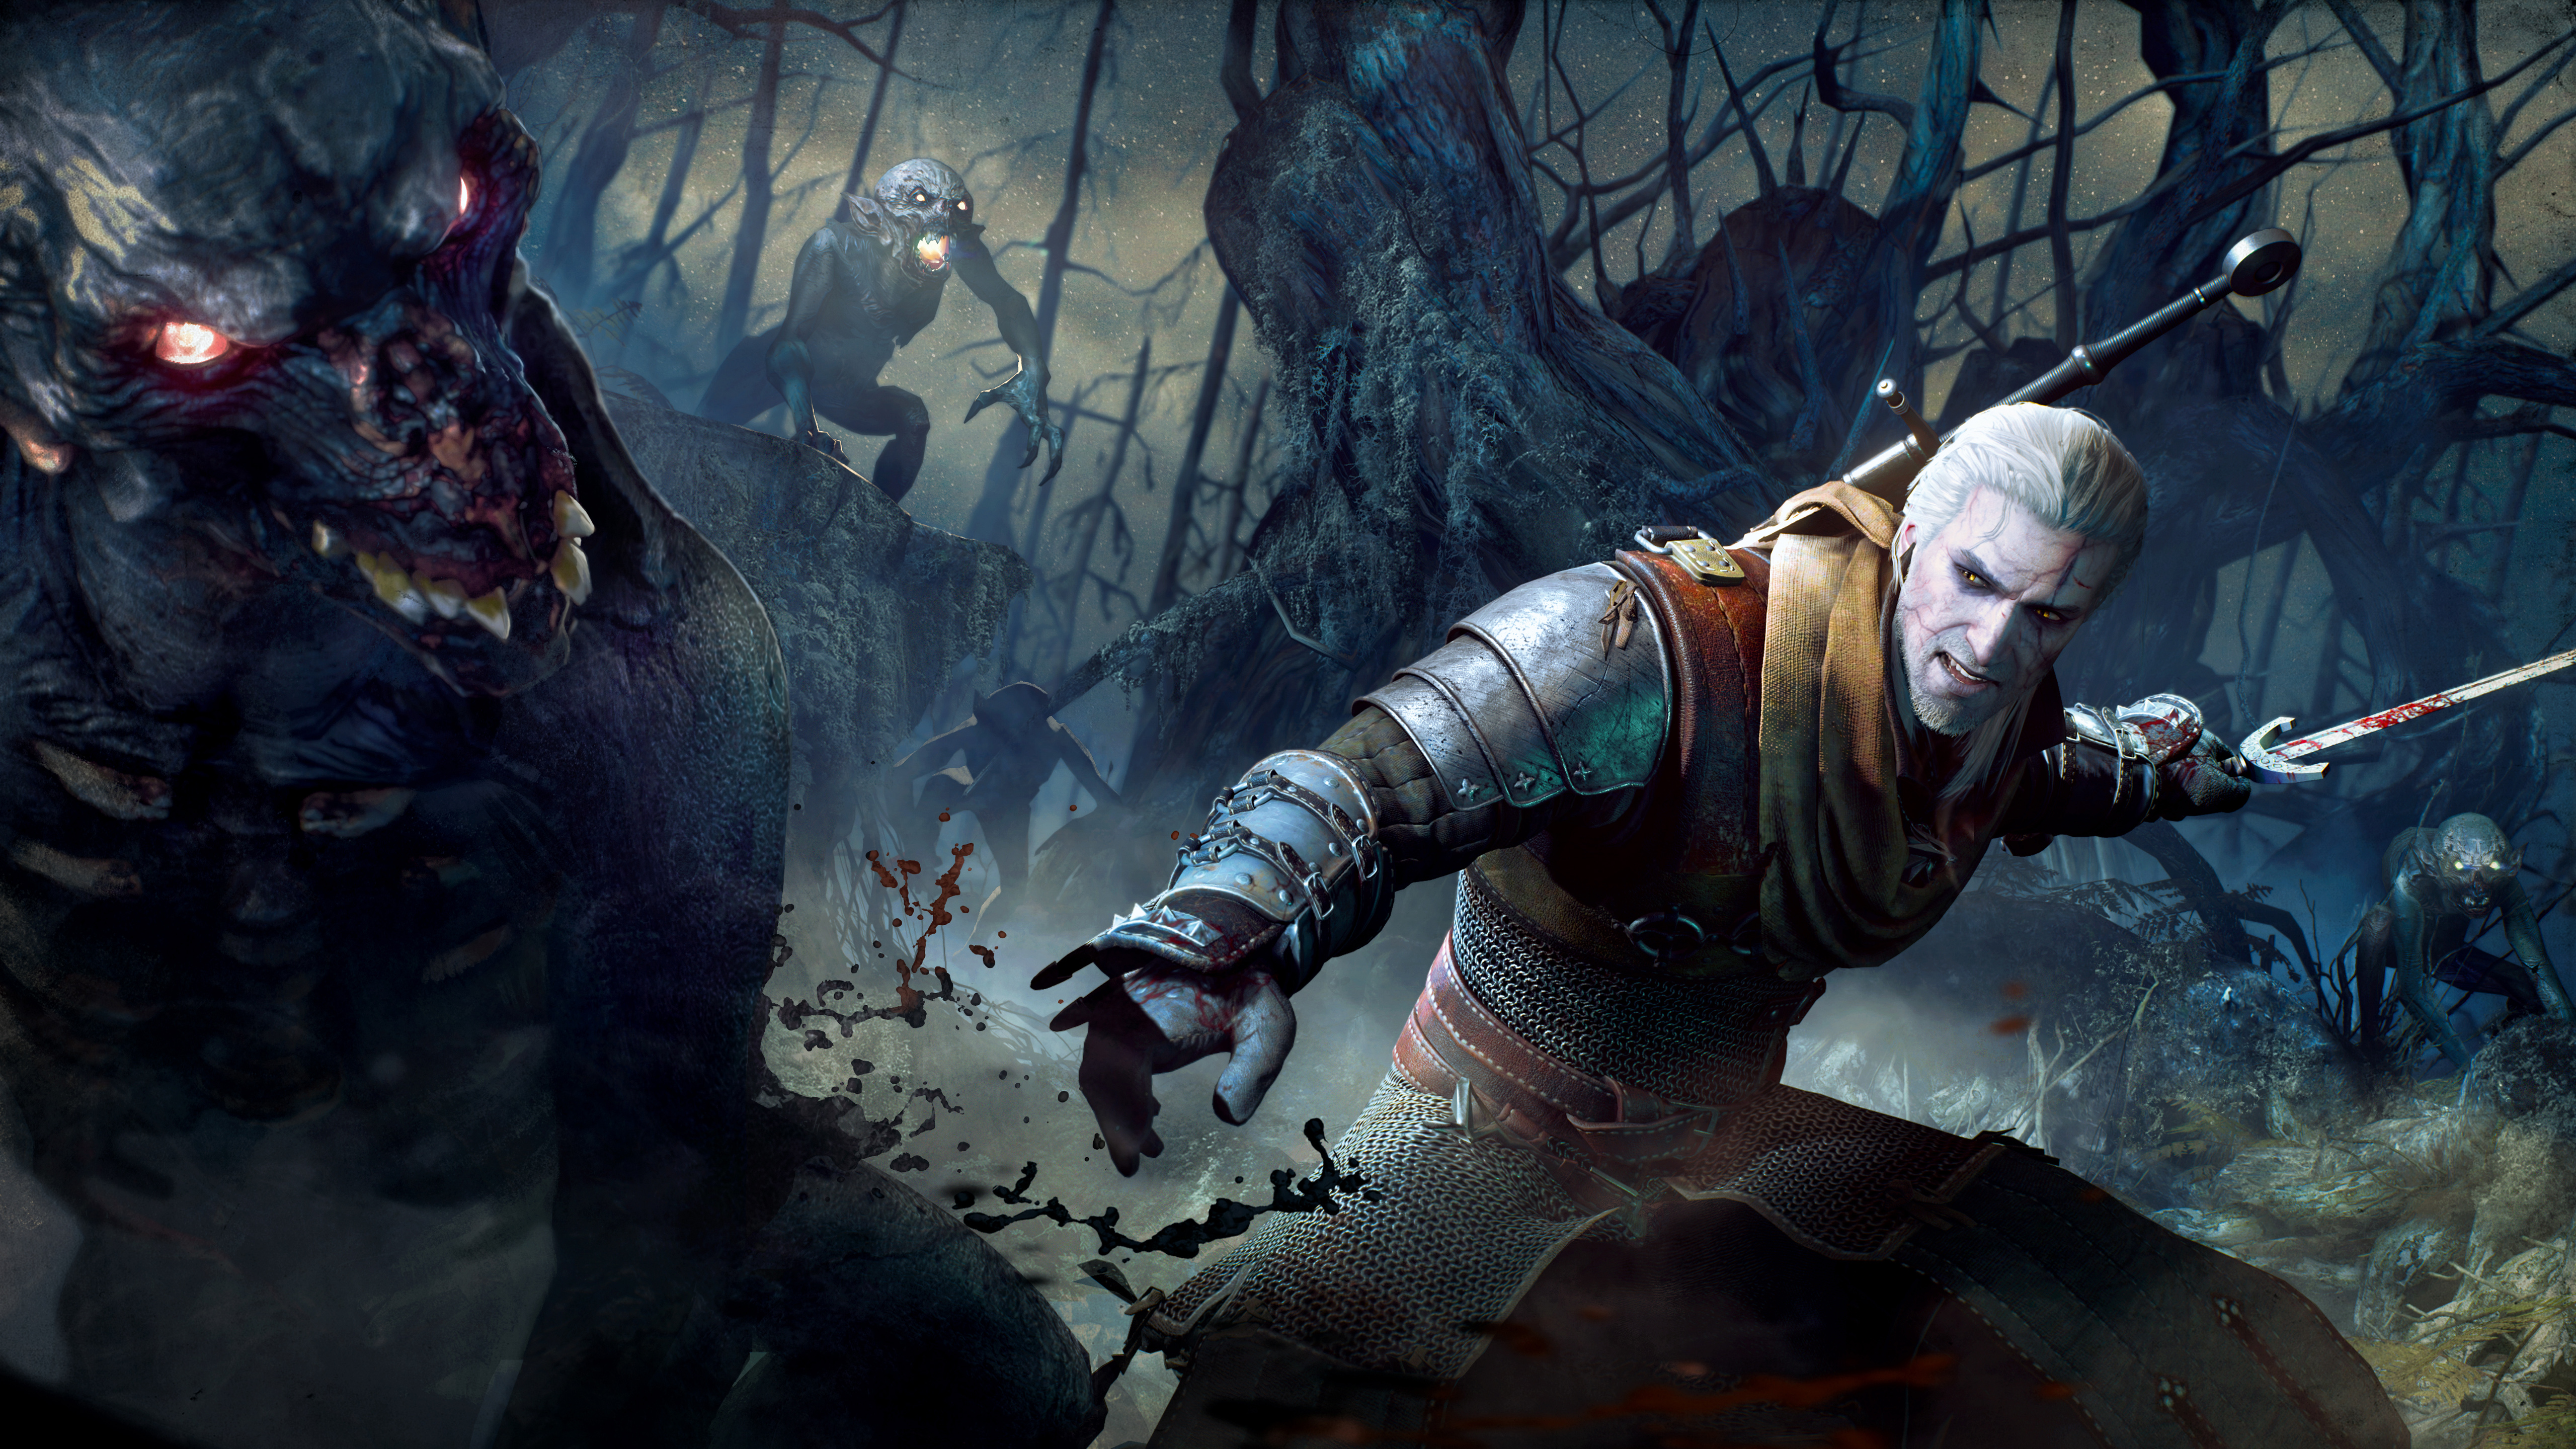 Free Download The Witcher 3 Wild Hunt 4k 5k Wallpapers Hd